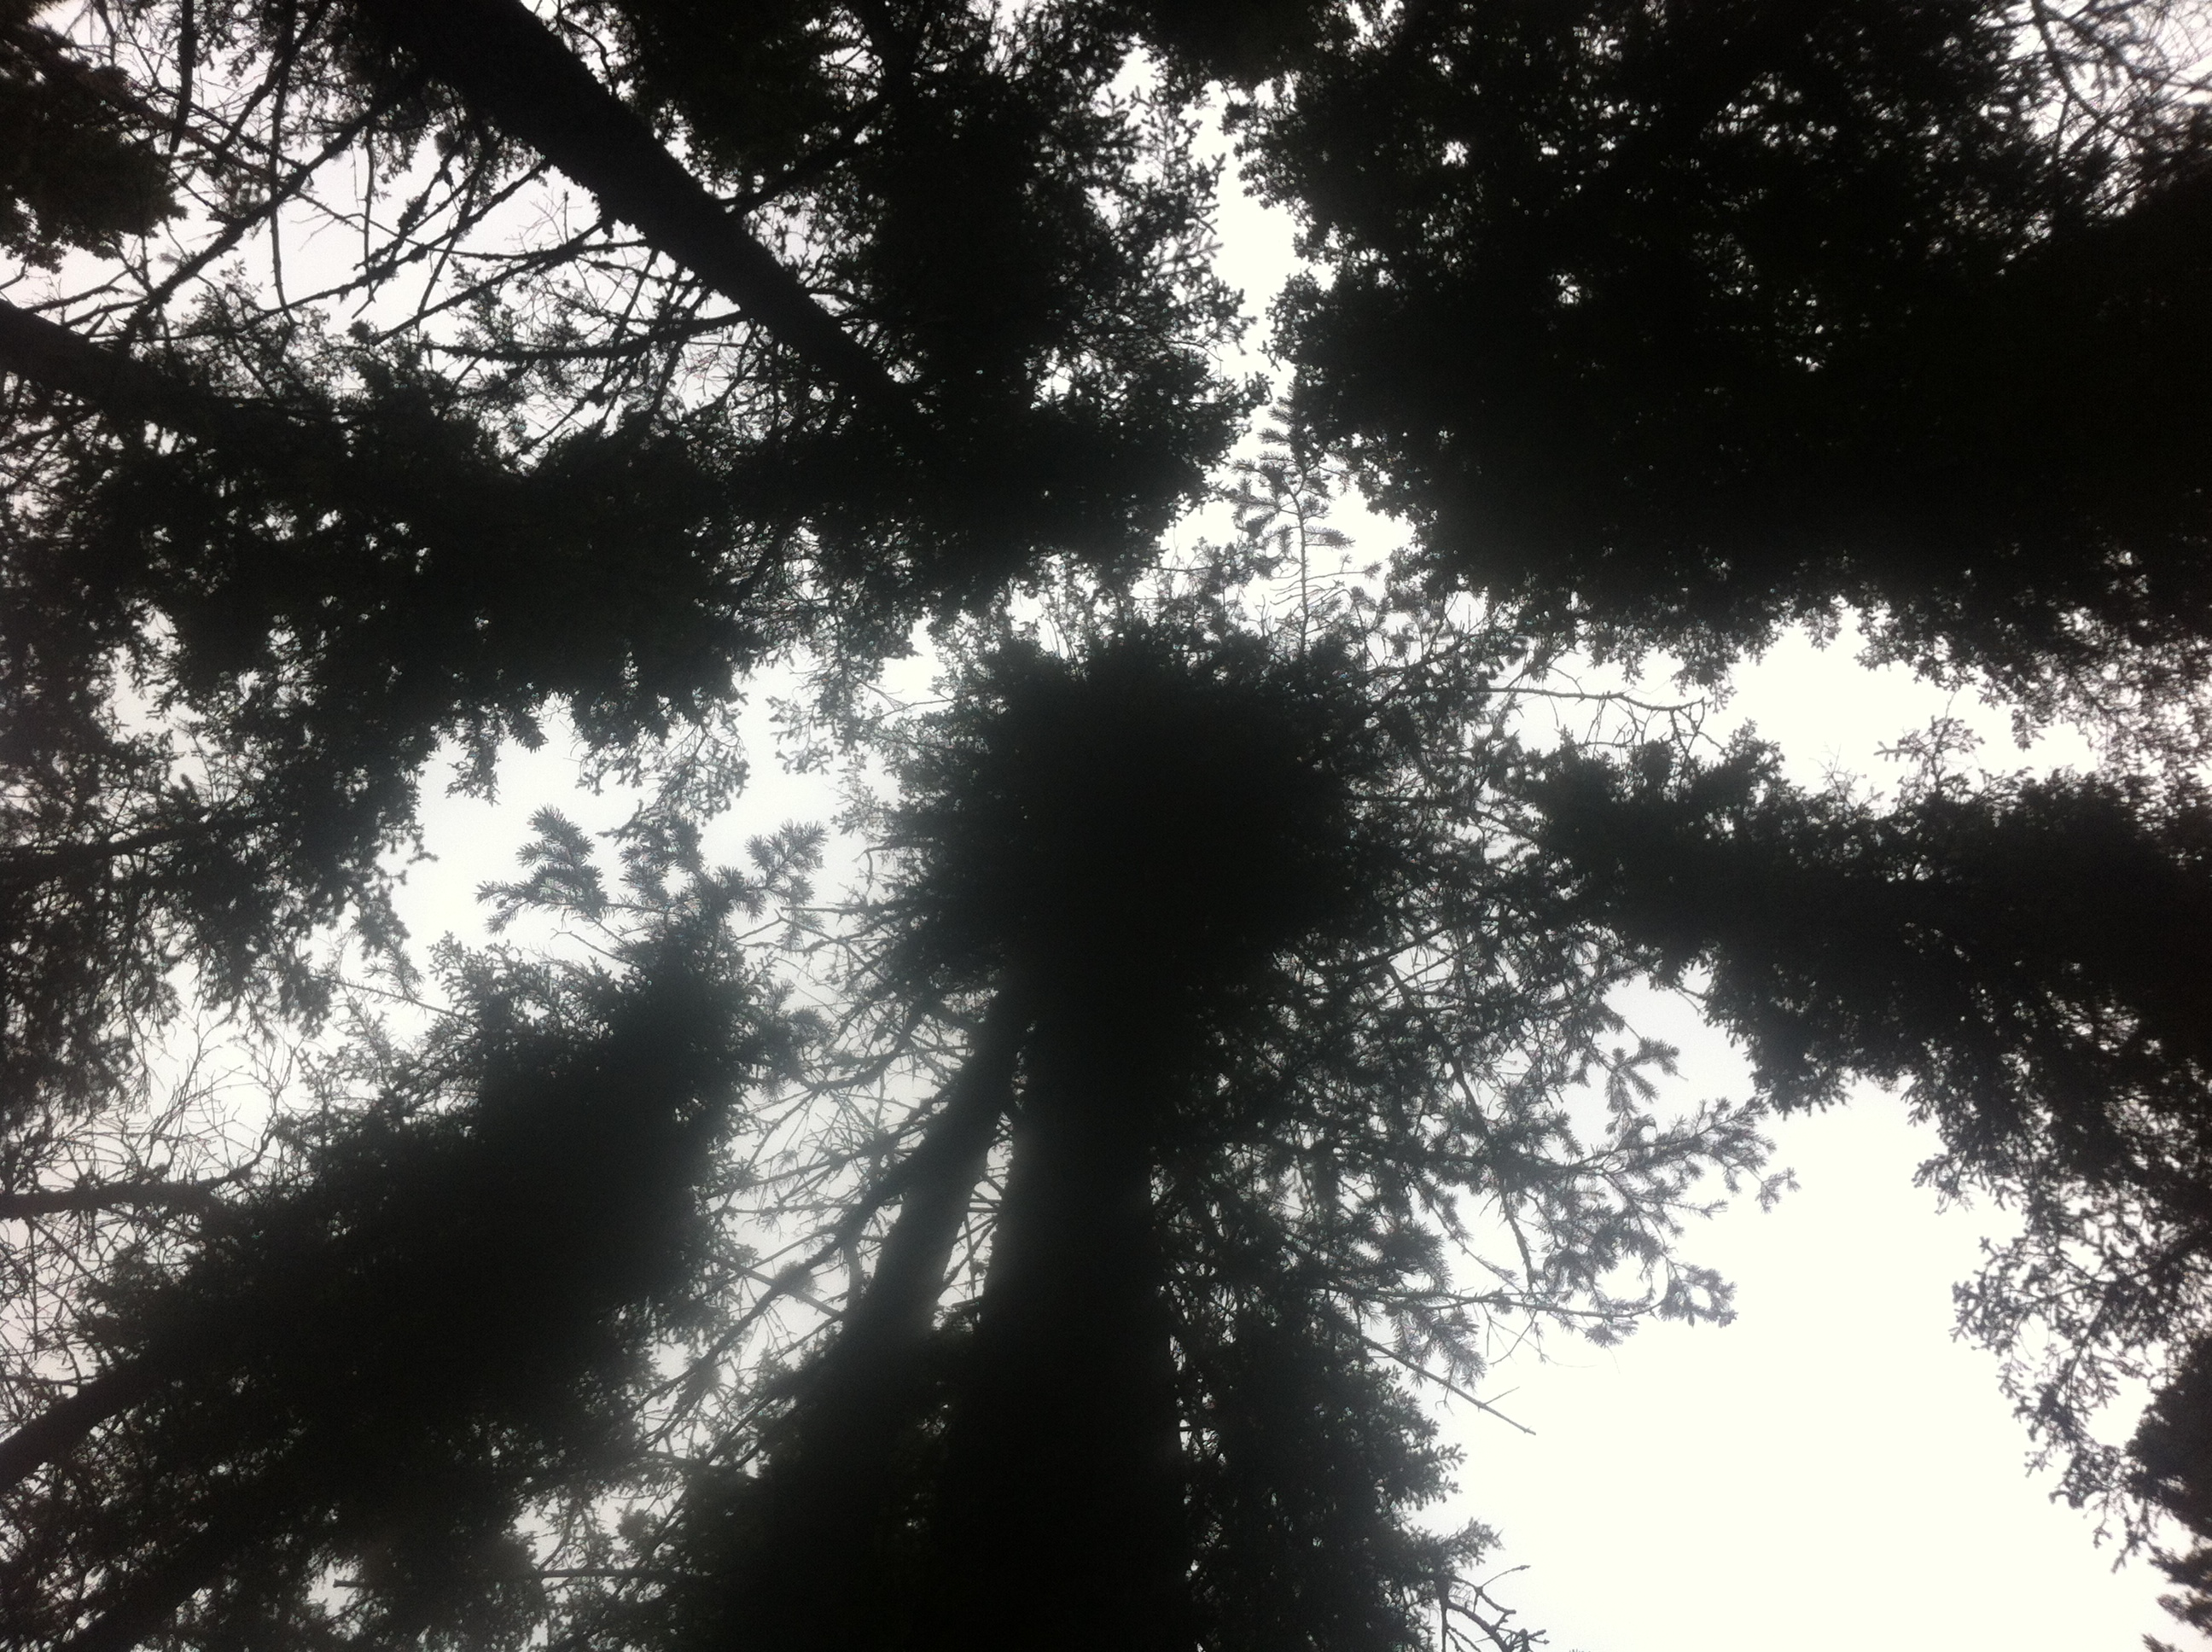 A thick canopy